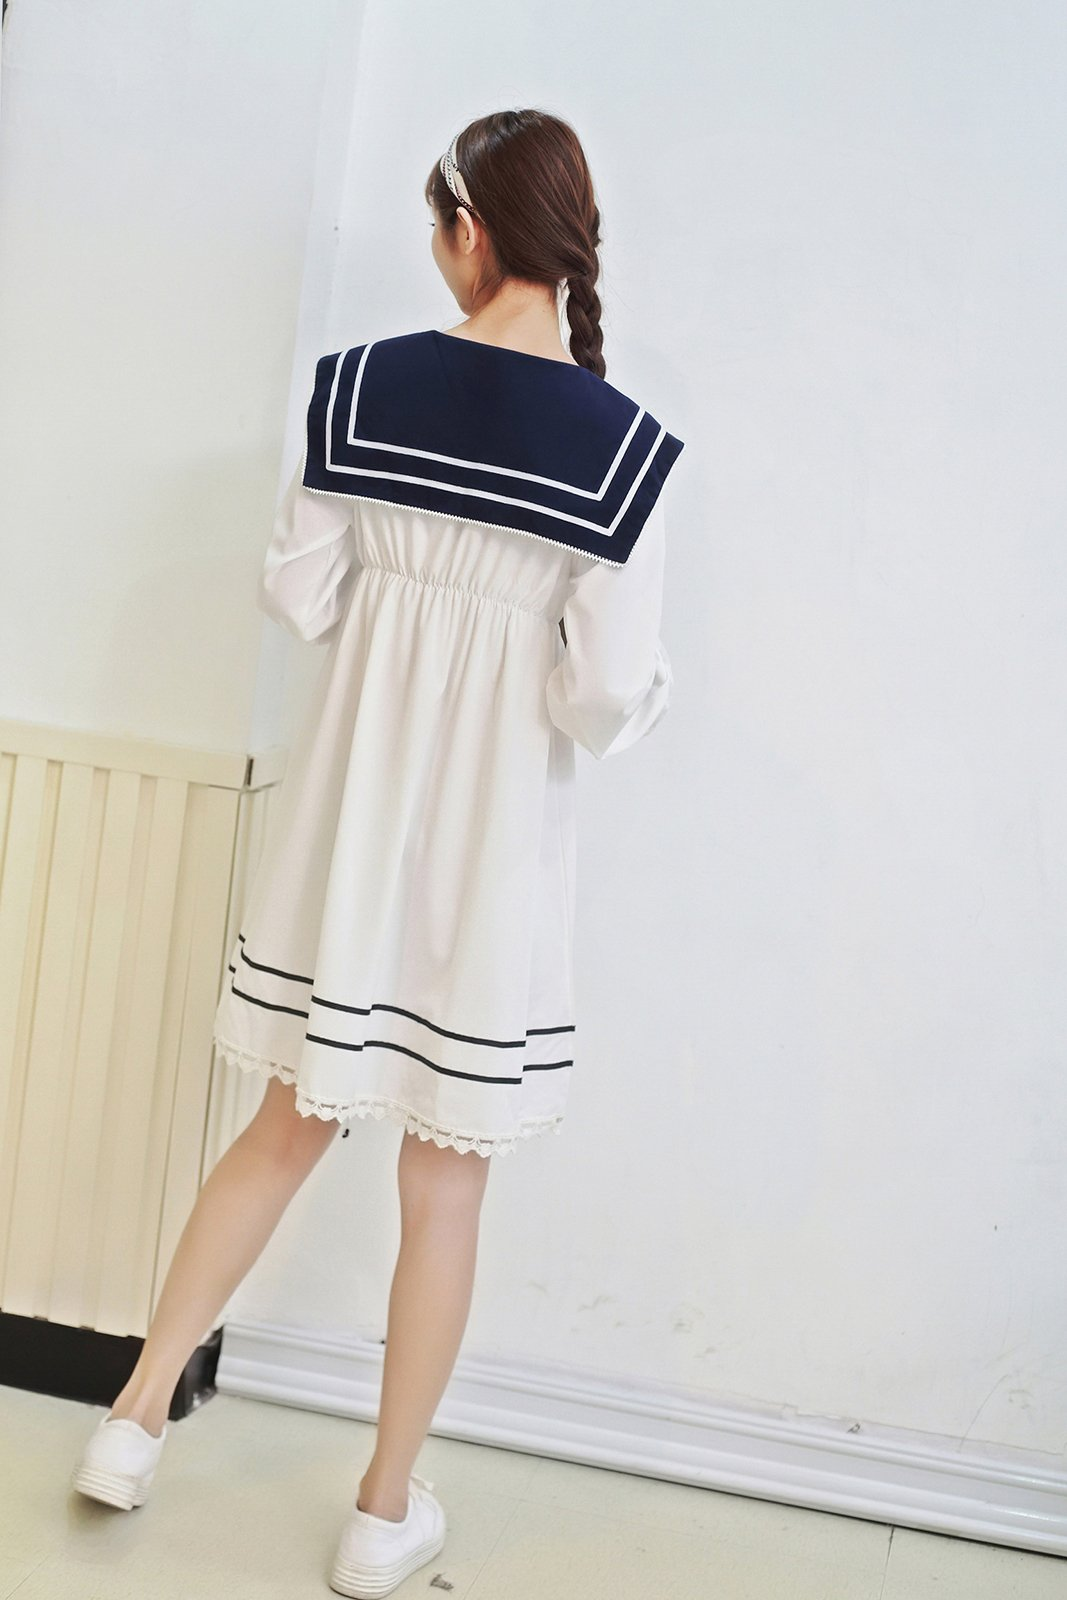 Lemail Girls Sailor School Uniform Chiffon Japanese Long Sleeve Pleated Mini Dress Blue 3XL by Lemail wig (Image #5)